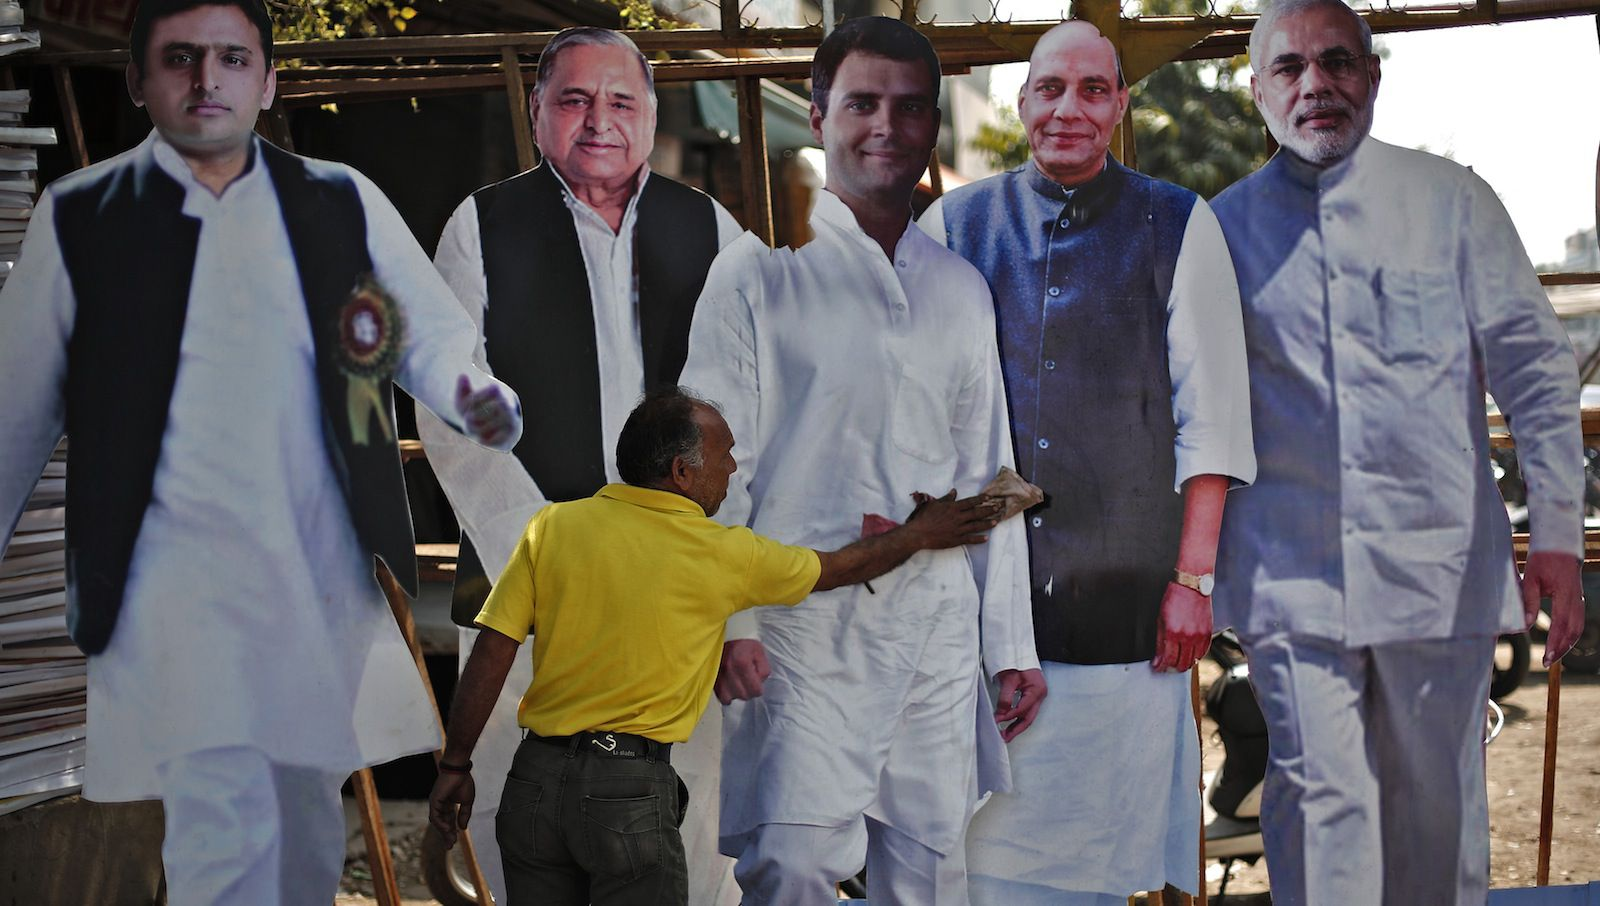 A worker cleans a cut-out of Rahul Gandhi (C) India's ruling Congress party Vice President, beside cut-outs of (L-R) Uttar Pradesh Chief Minister Akhilesh Yadav, Akhilesh's father and chief of Samajwadi Party Mulayam Singh Yadav, India's main opposition Bharatiya Janata Party President Rajnath Singh and Hindu nationalist Narendra Modi, prime ministerial candidate for BJP, as they are put on display for sale ahead of general elections in Ghaziabad, on the outskirts of New Delhi, March 24, 2014. The world's largest democracy goes to the ballot box next month. REUTERS/Adnan Abidi (INDIA - Tags: POLITICS ELECTIONS) - RTR3IBM2